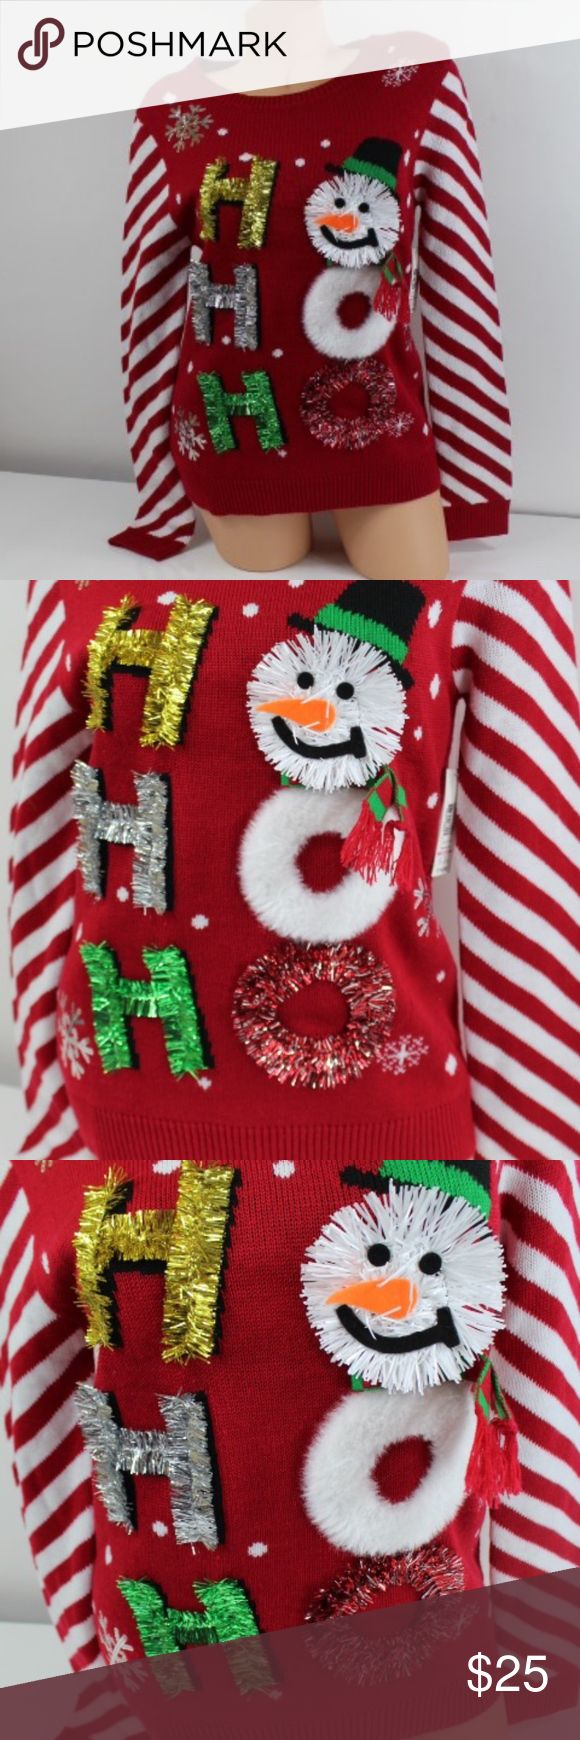 SALE CHRISTMAS UGLY SWEATER SALE CHRISTMAS UGLY SWEATER  HO HO HO GARLAND STREAMER THE 'O' UNDER THE SNOW MAN IS FUR   PERFECT FOR THE HOLIDAY SPIRT   NWT NO TRADES  JUST HAVE ONE LEFT IN STOCK!!! Sweaters